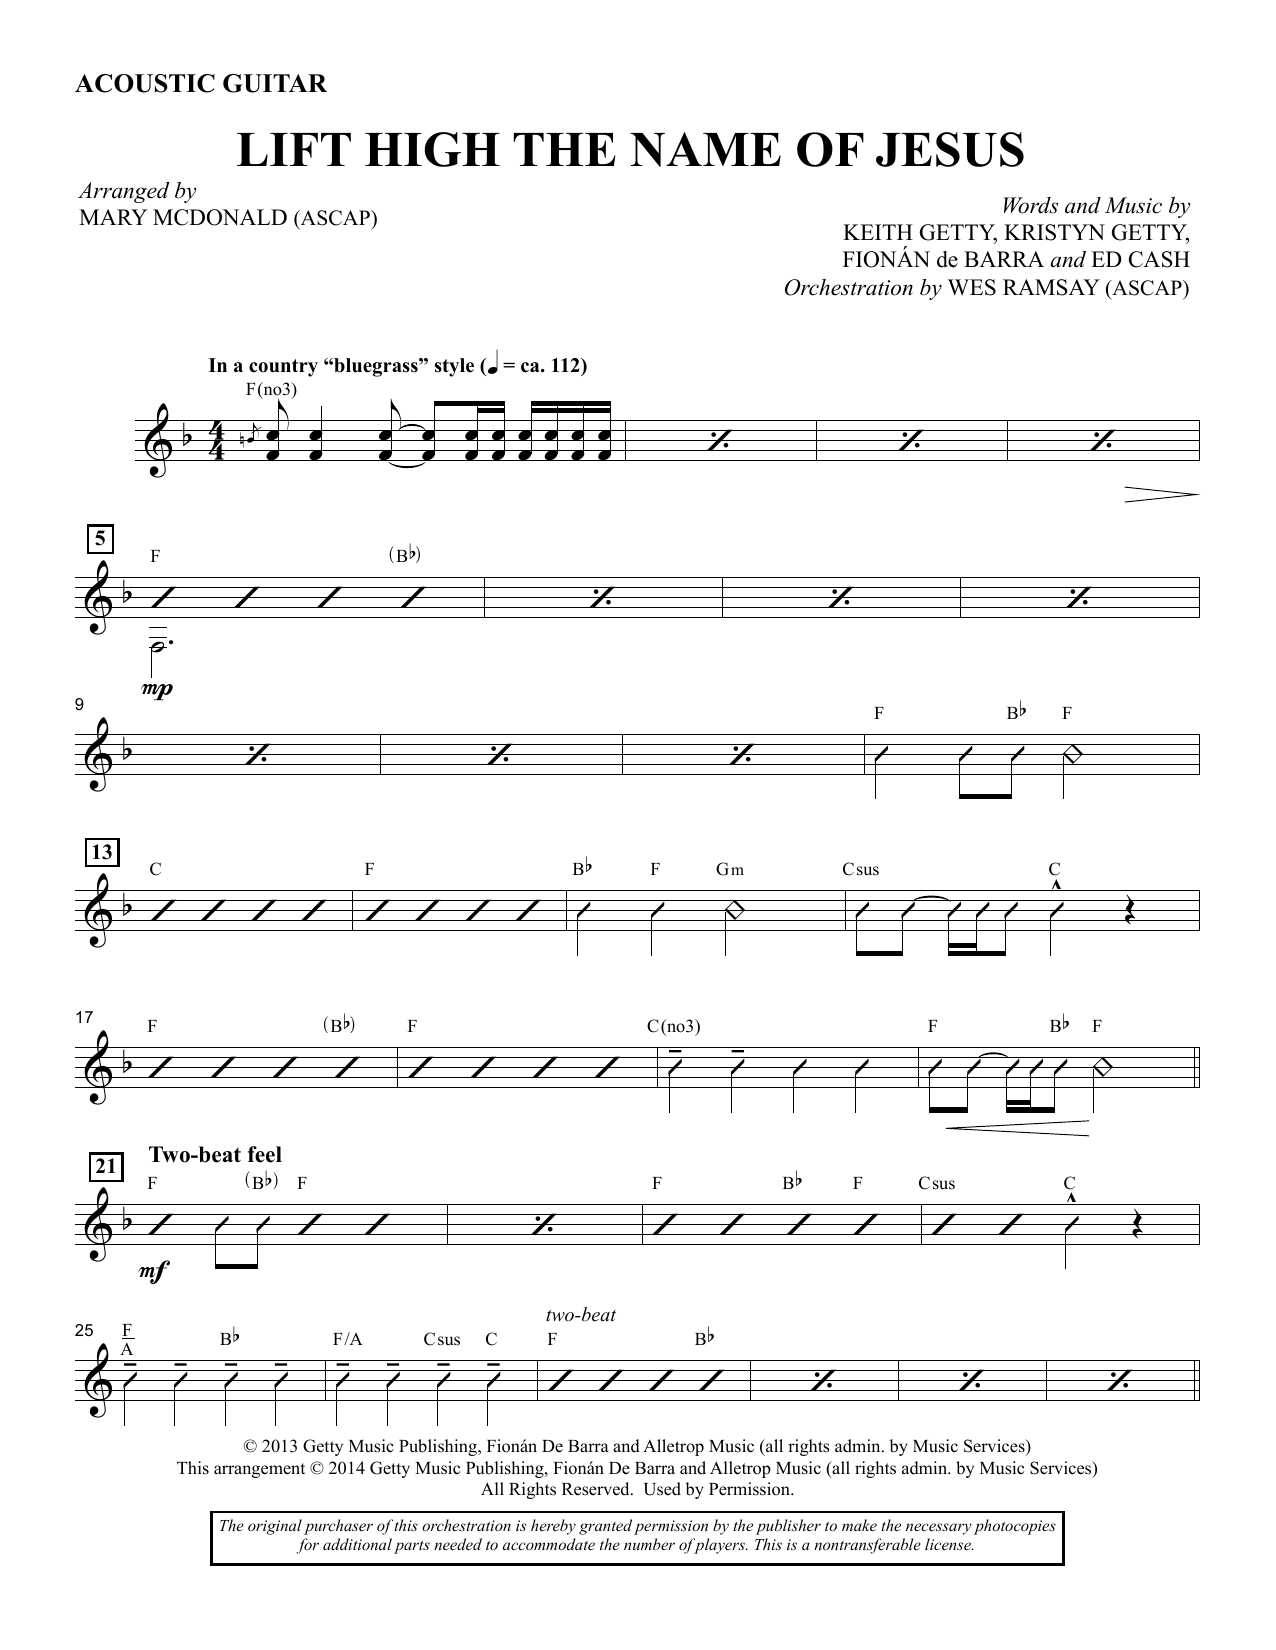 Lift High the Name of Jesus - Acoustic Guitar sheet music